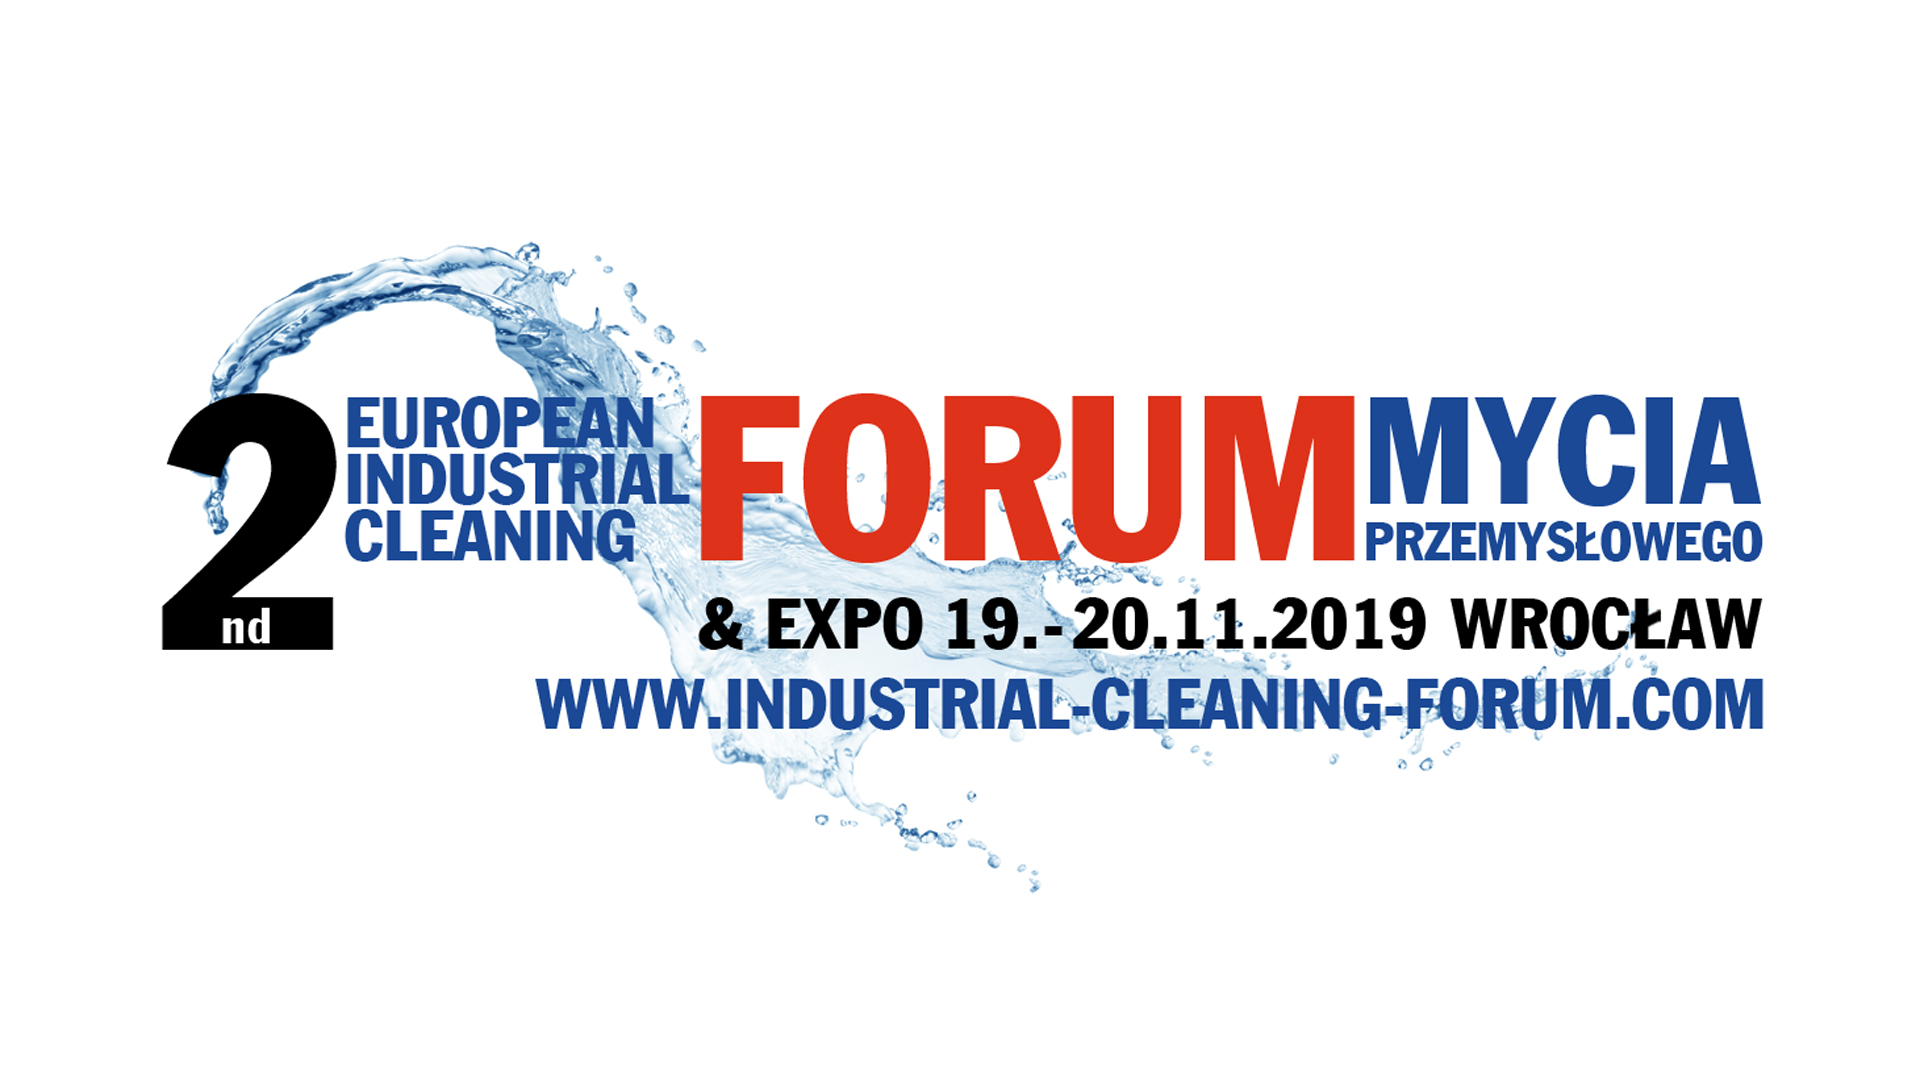 European Industrial Cleaning Forum 2018